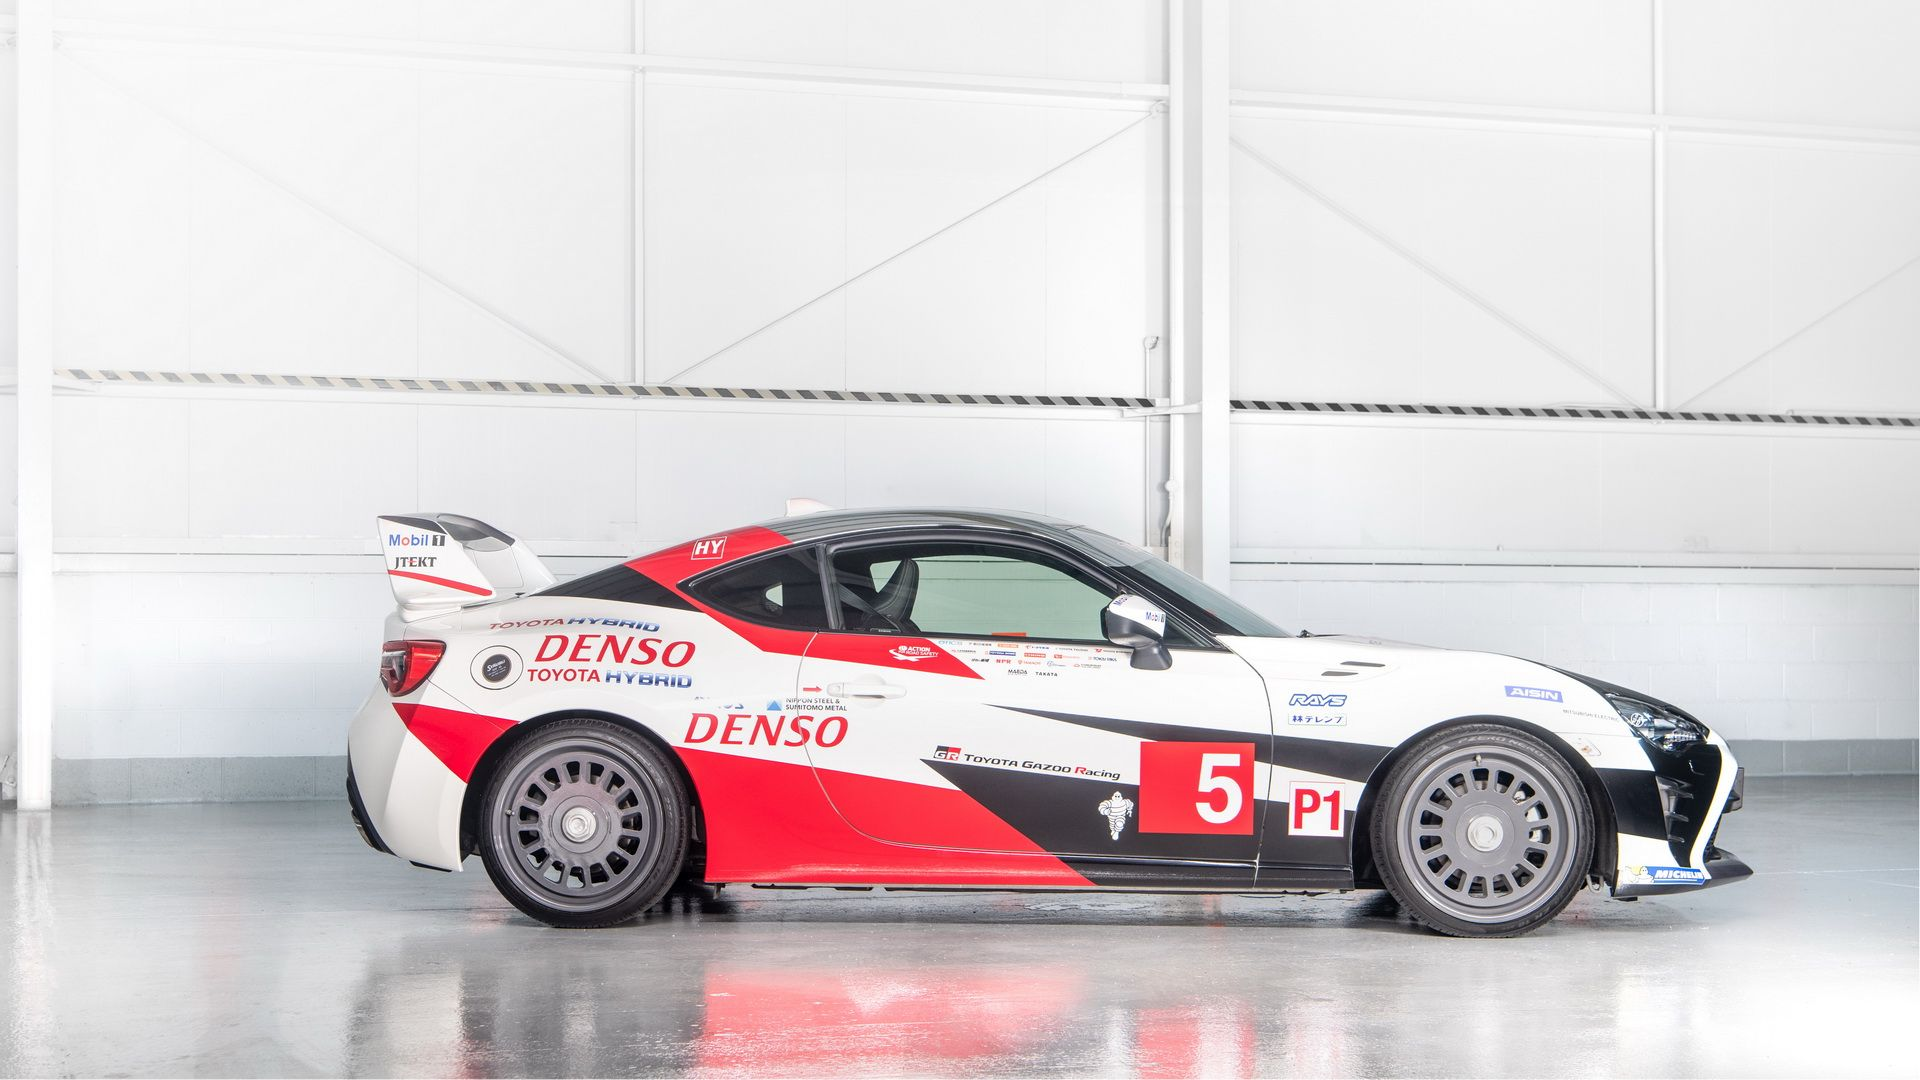 toyota-gt86-heritage-livery-24-hours-of-le-mans-14